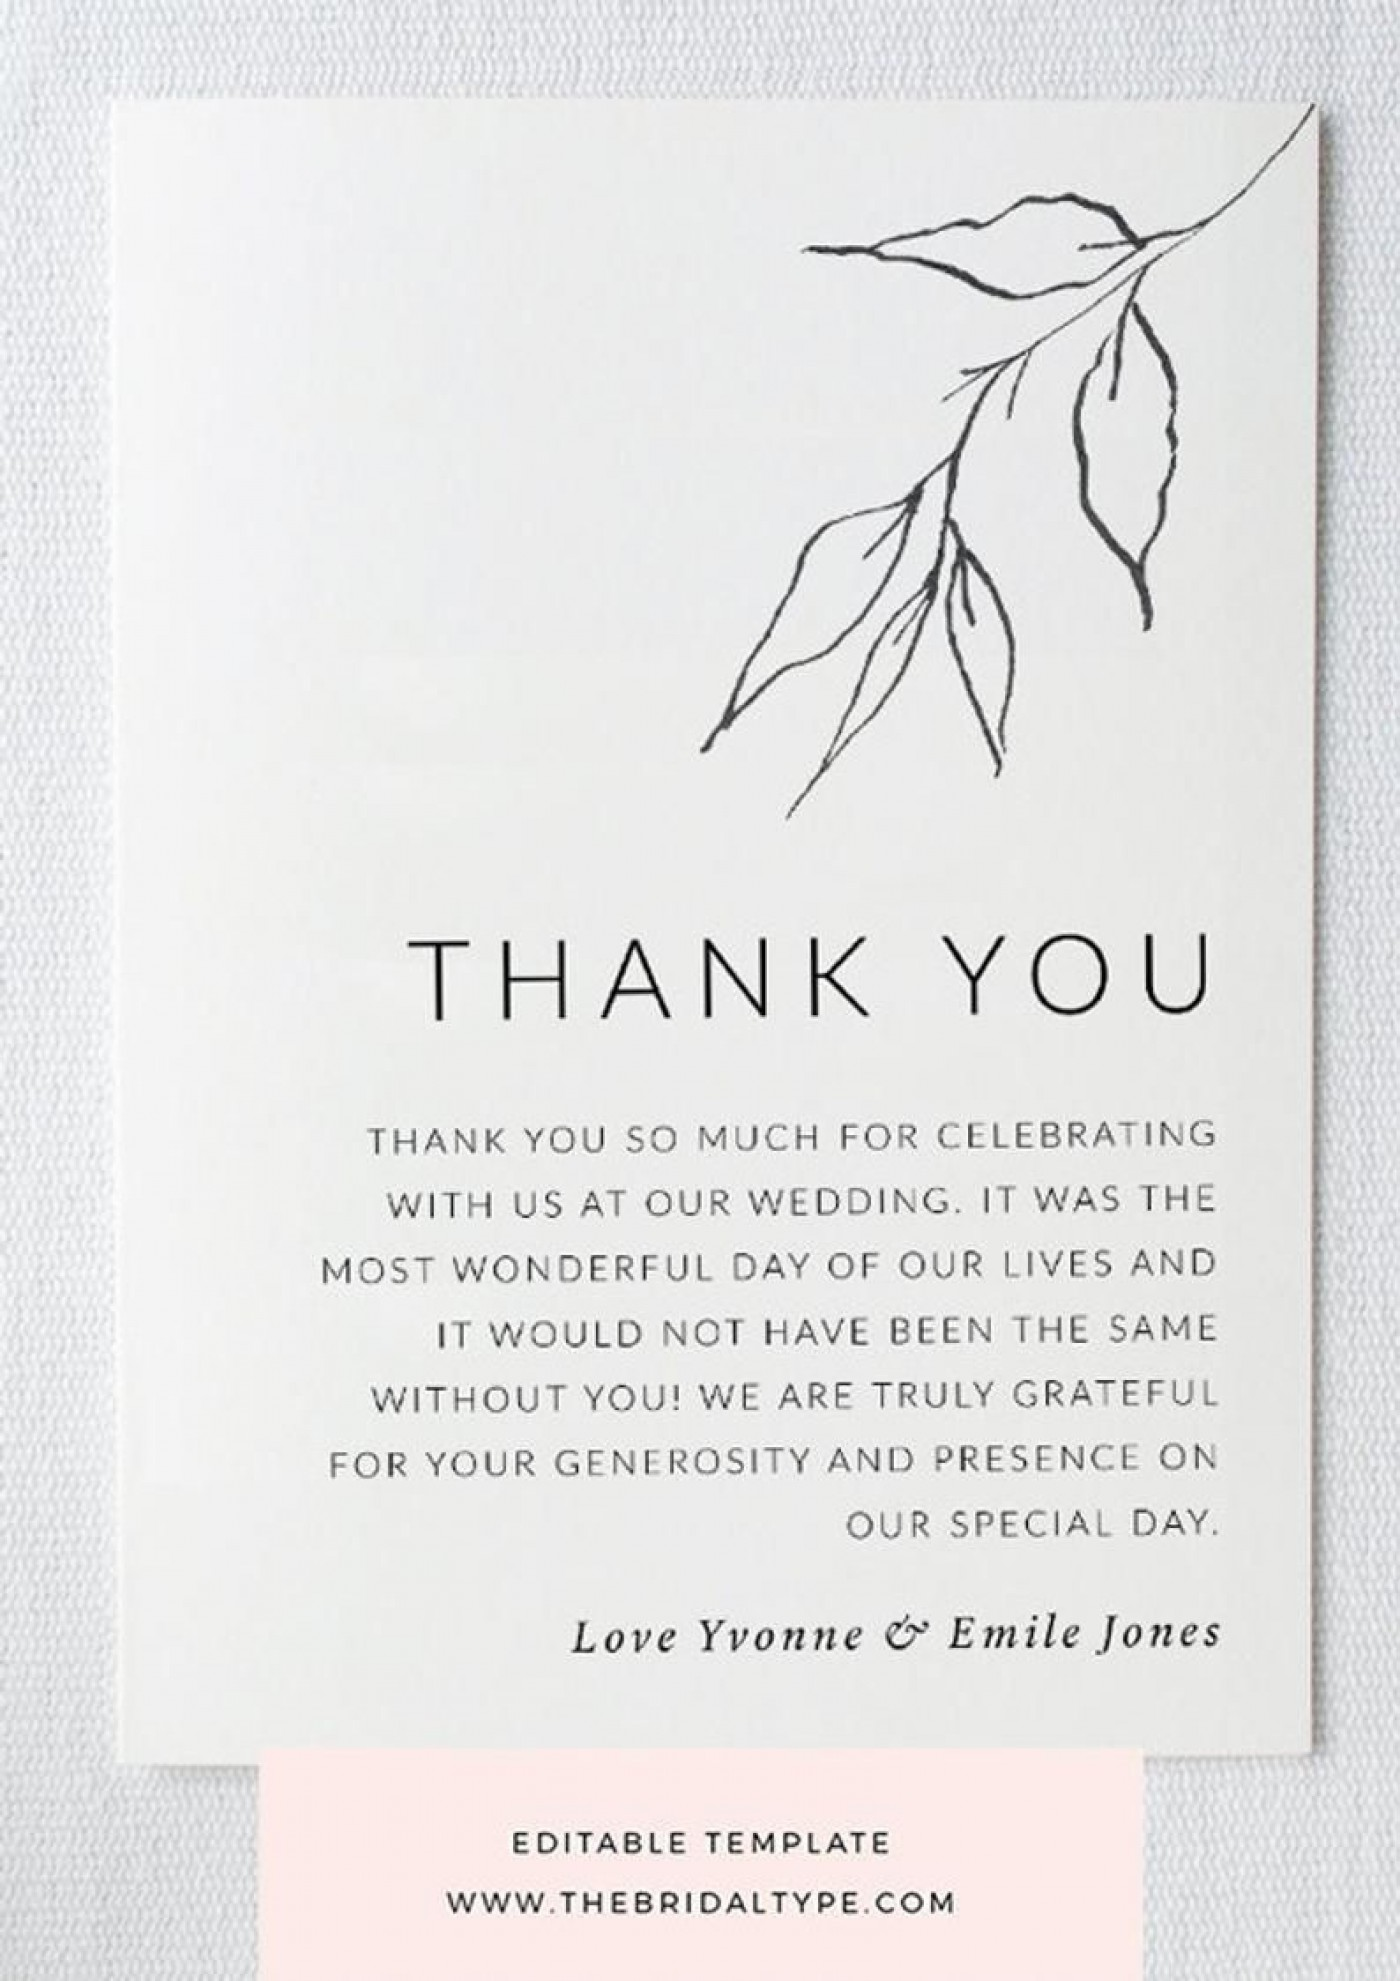 004 Unbelievable Wedding Thank You Card Template High Definition  Photoshop Word Etsy1400